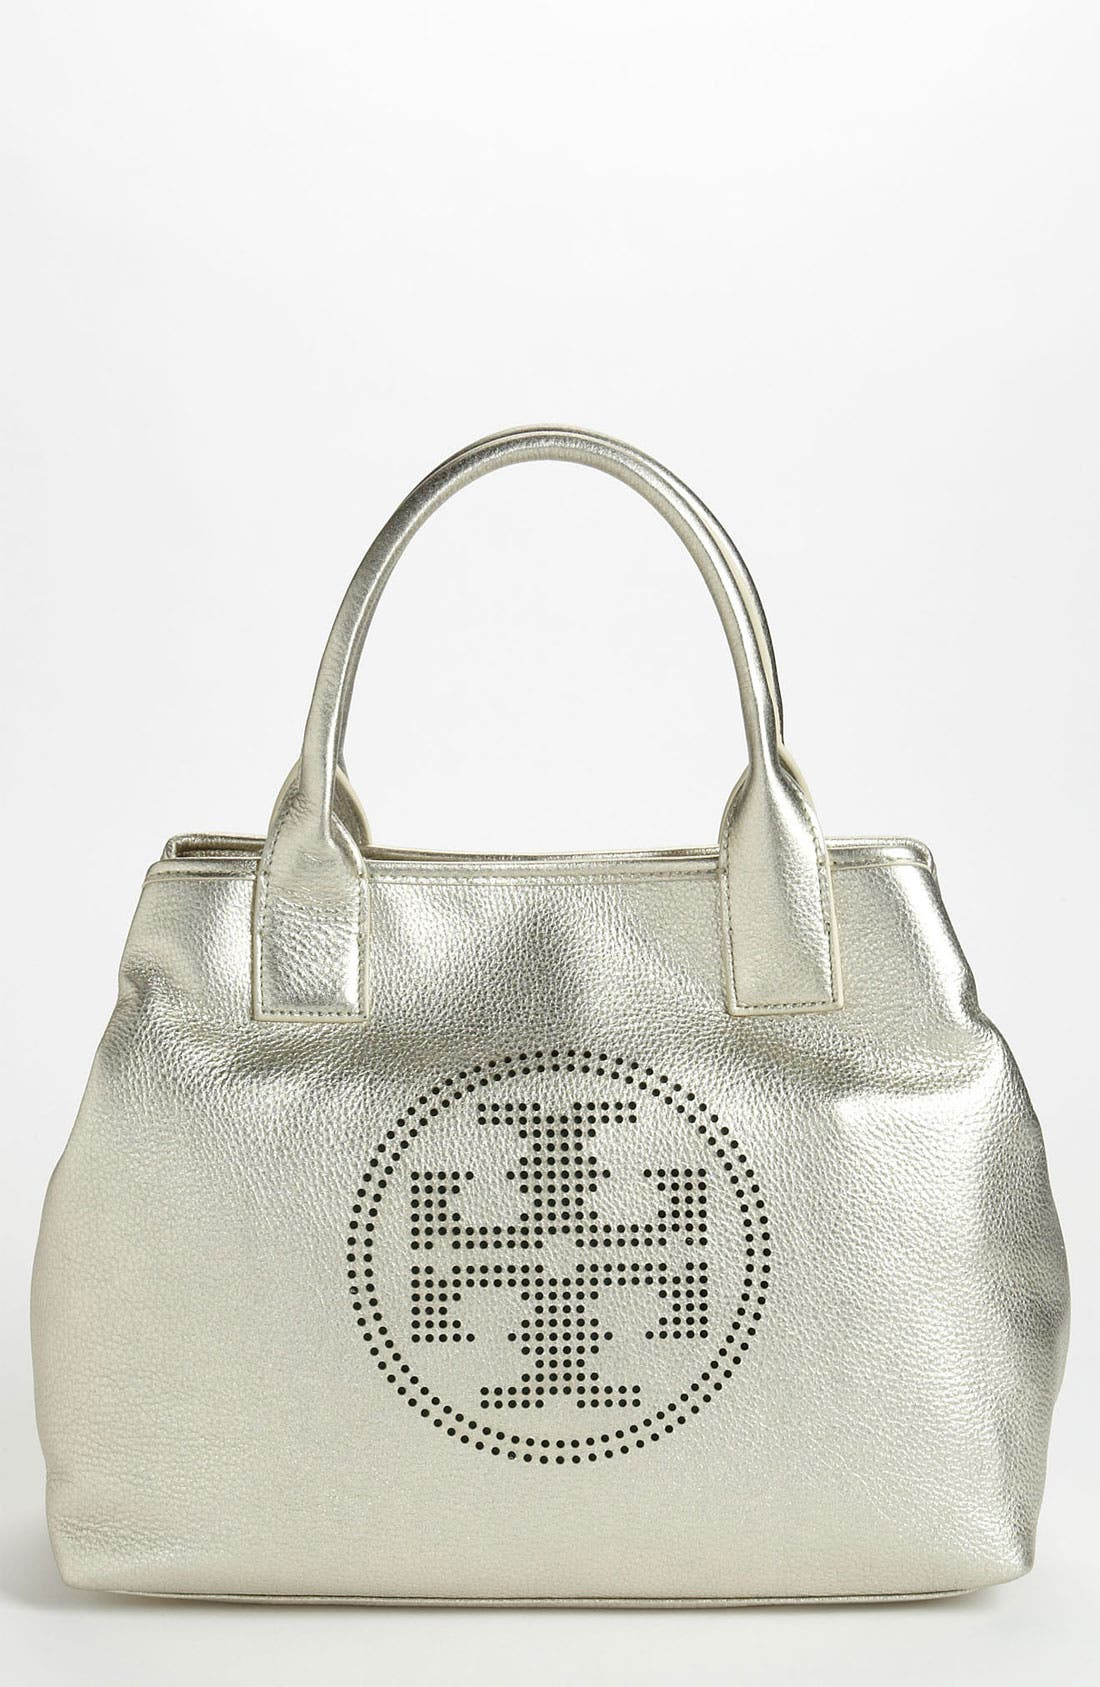 Alternate Image 1 Selected - Tory Burch 'Small' Perforated Logo Metallic Classic Tote